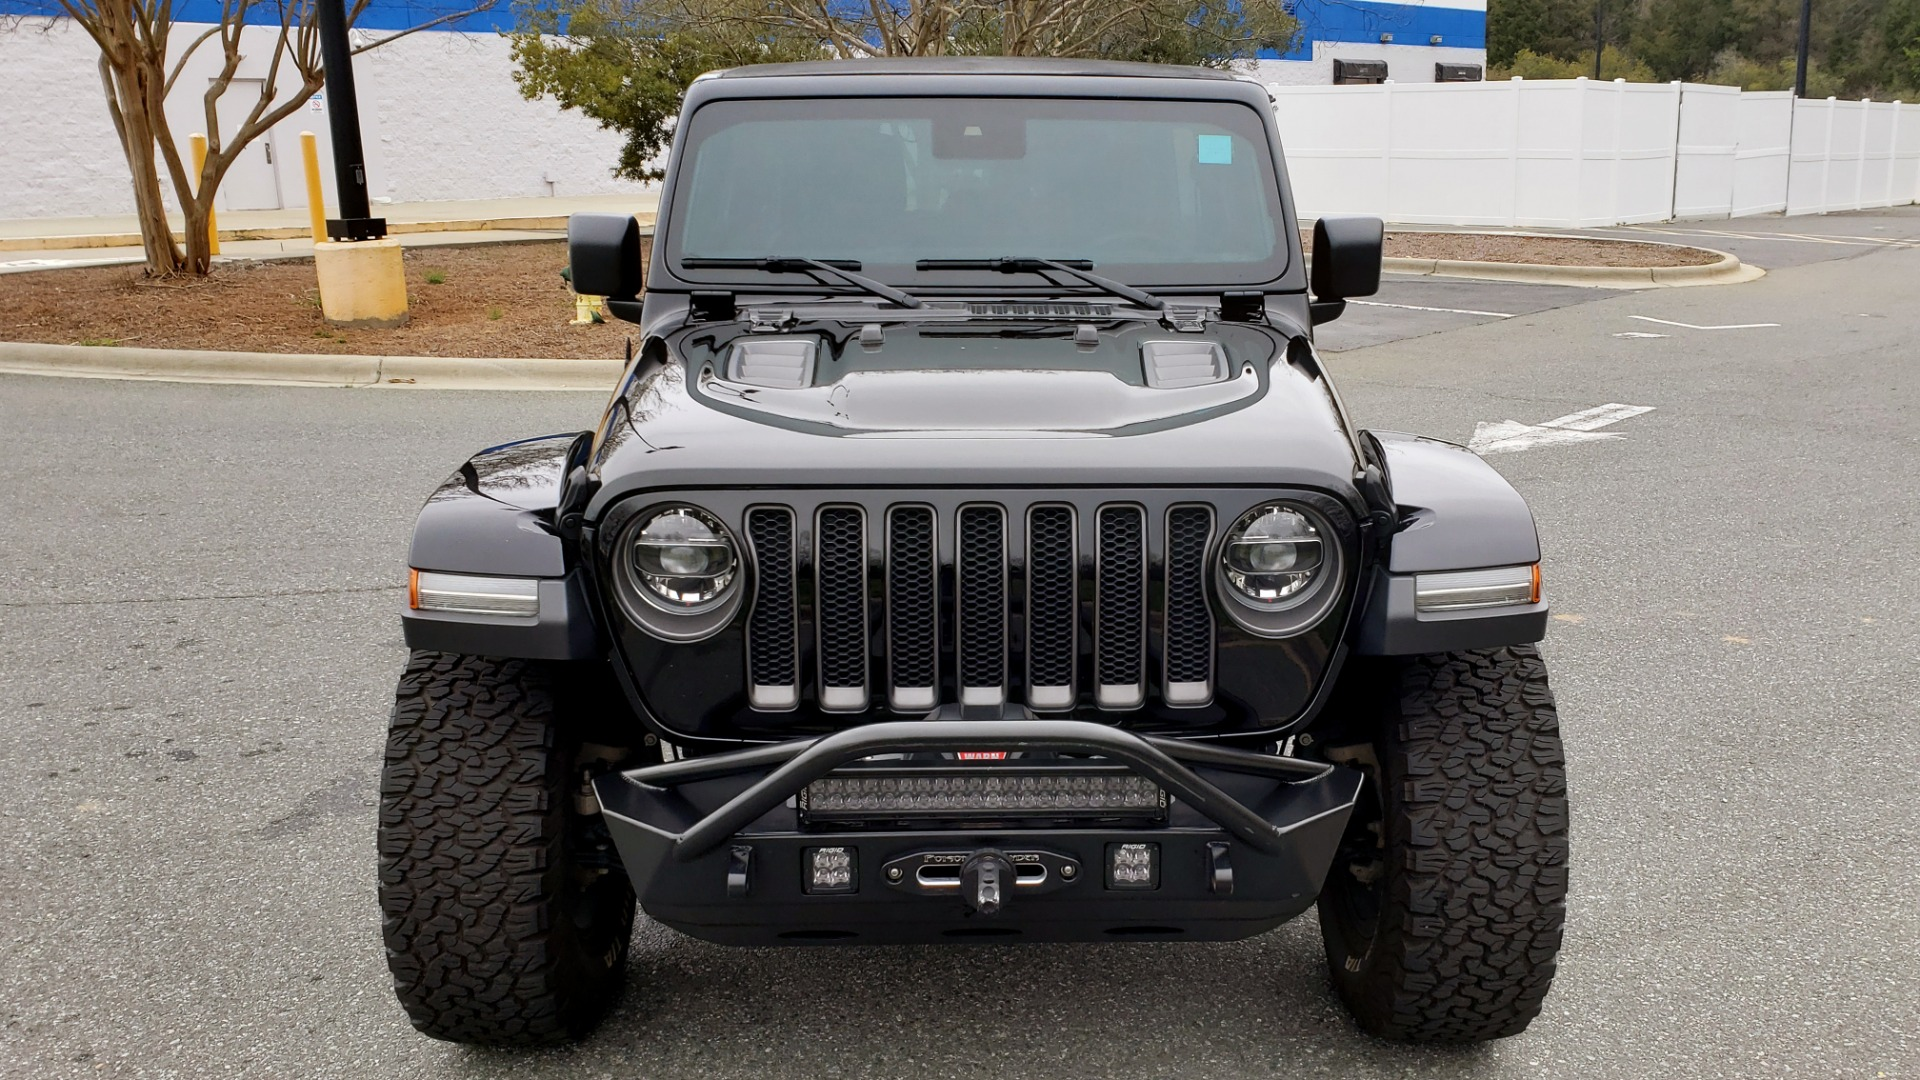 Used 2019 Jeep WRANGLER UNLIMITED RUBICON 4WD / V6 / 8-SPD AUTO / NAV / PWR TOP / REARVIEW for sale Sold at Formula Imports in Charlotte NC 28227 23